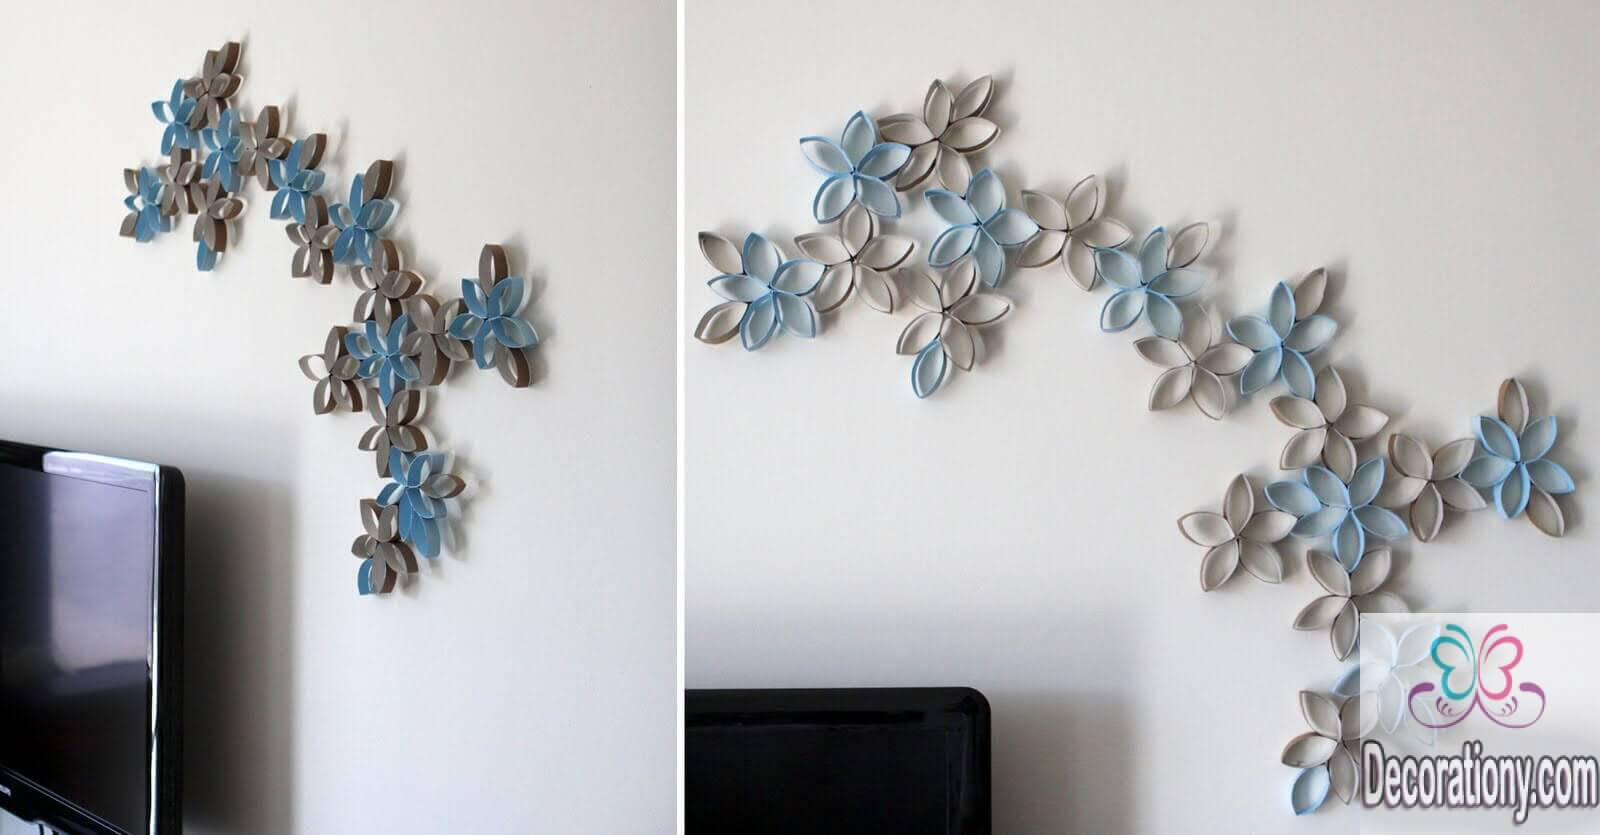 Wall Art Flowers Pictures : Living room wall decor ideas